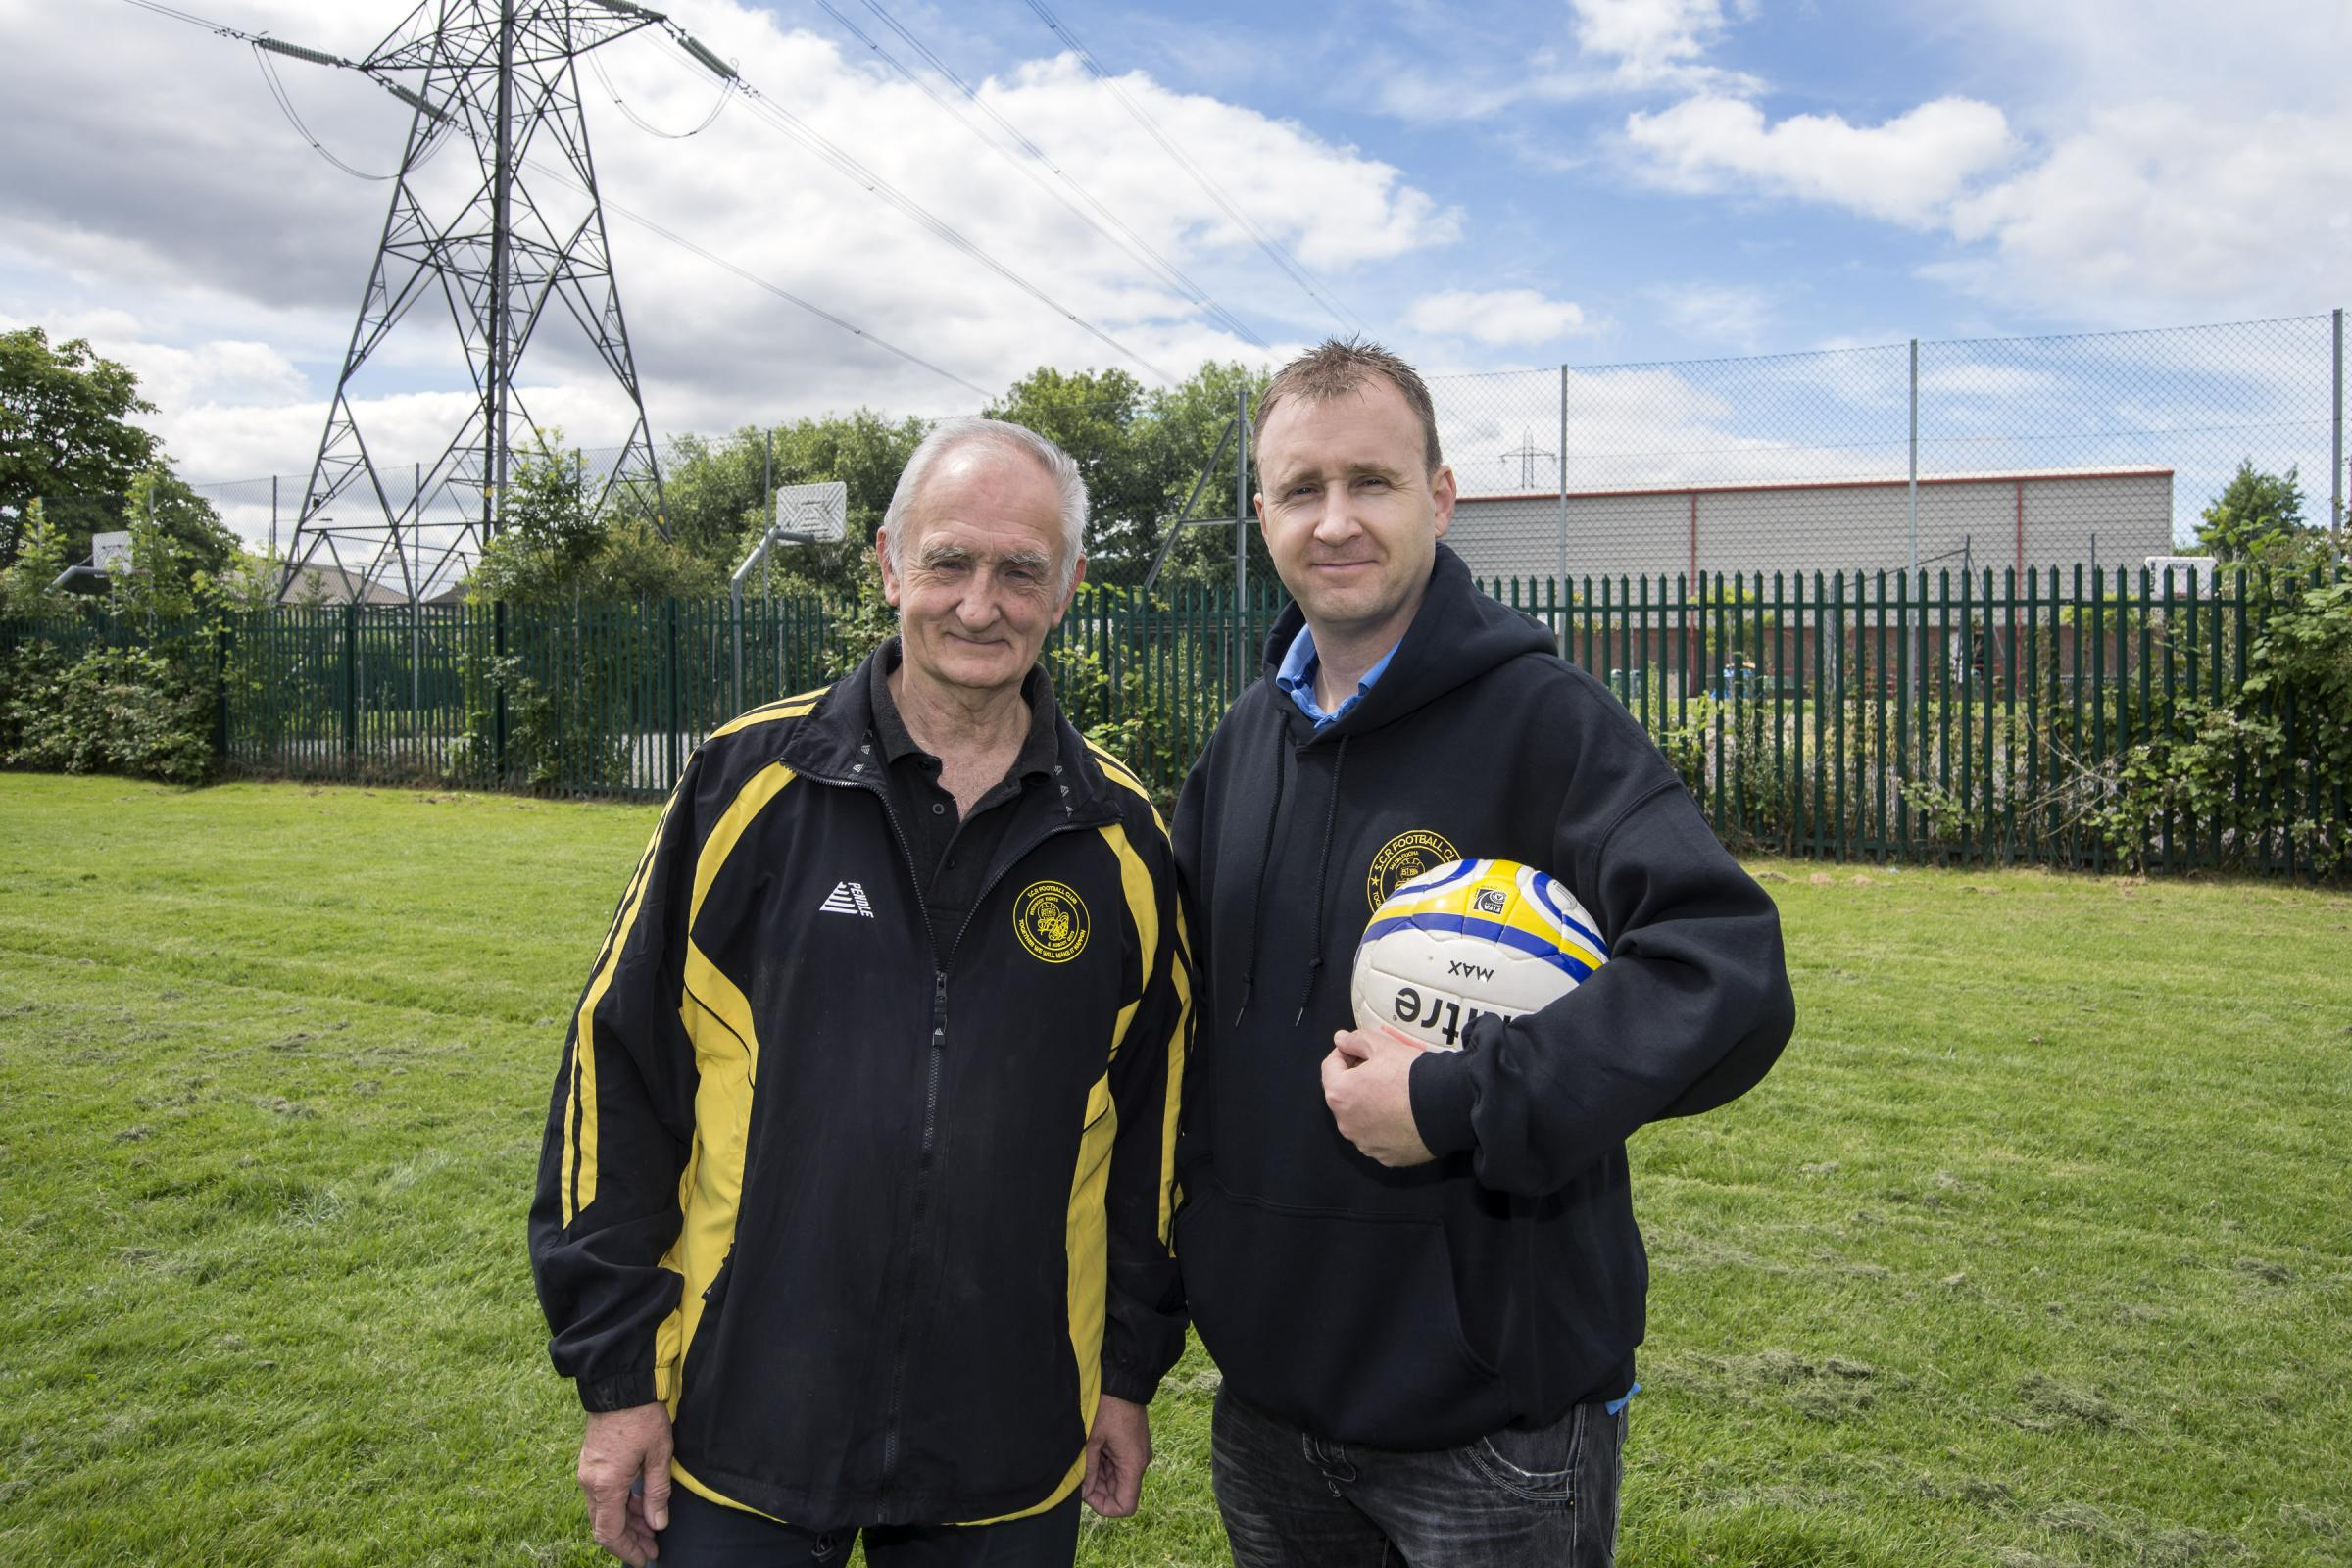 Alan Salmon, chairman of Sutton Common Rovers, and his son Justin, the club's development officer